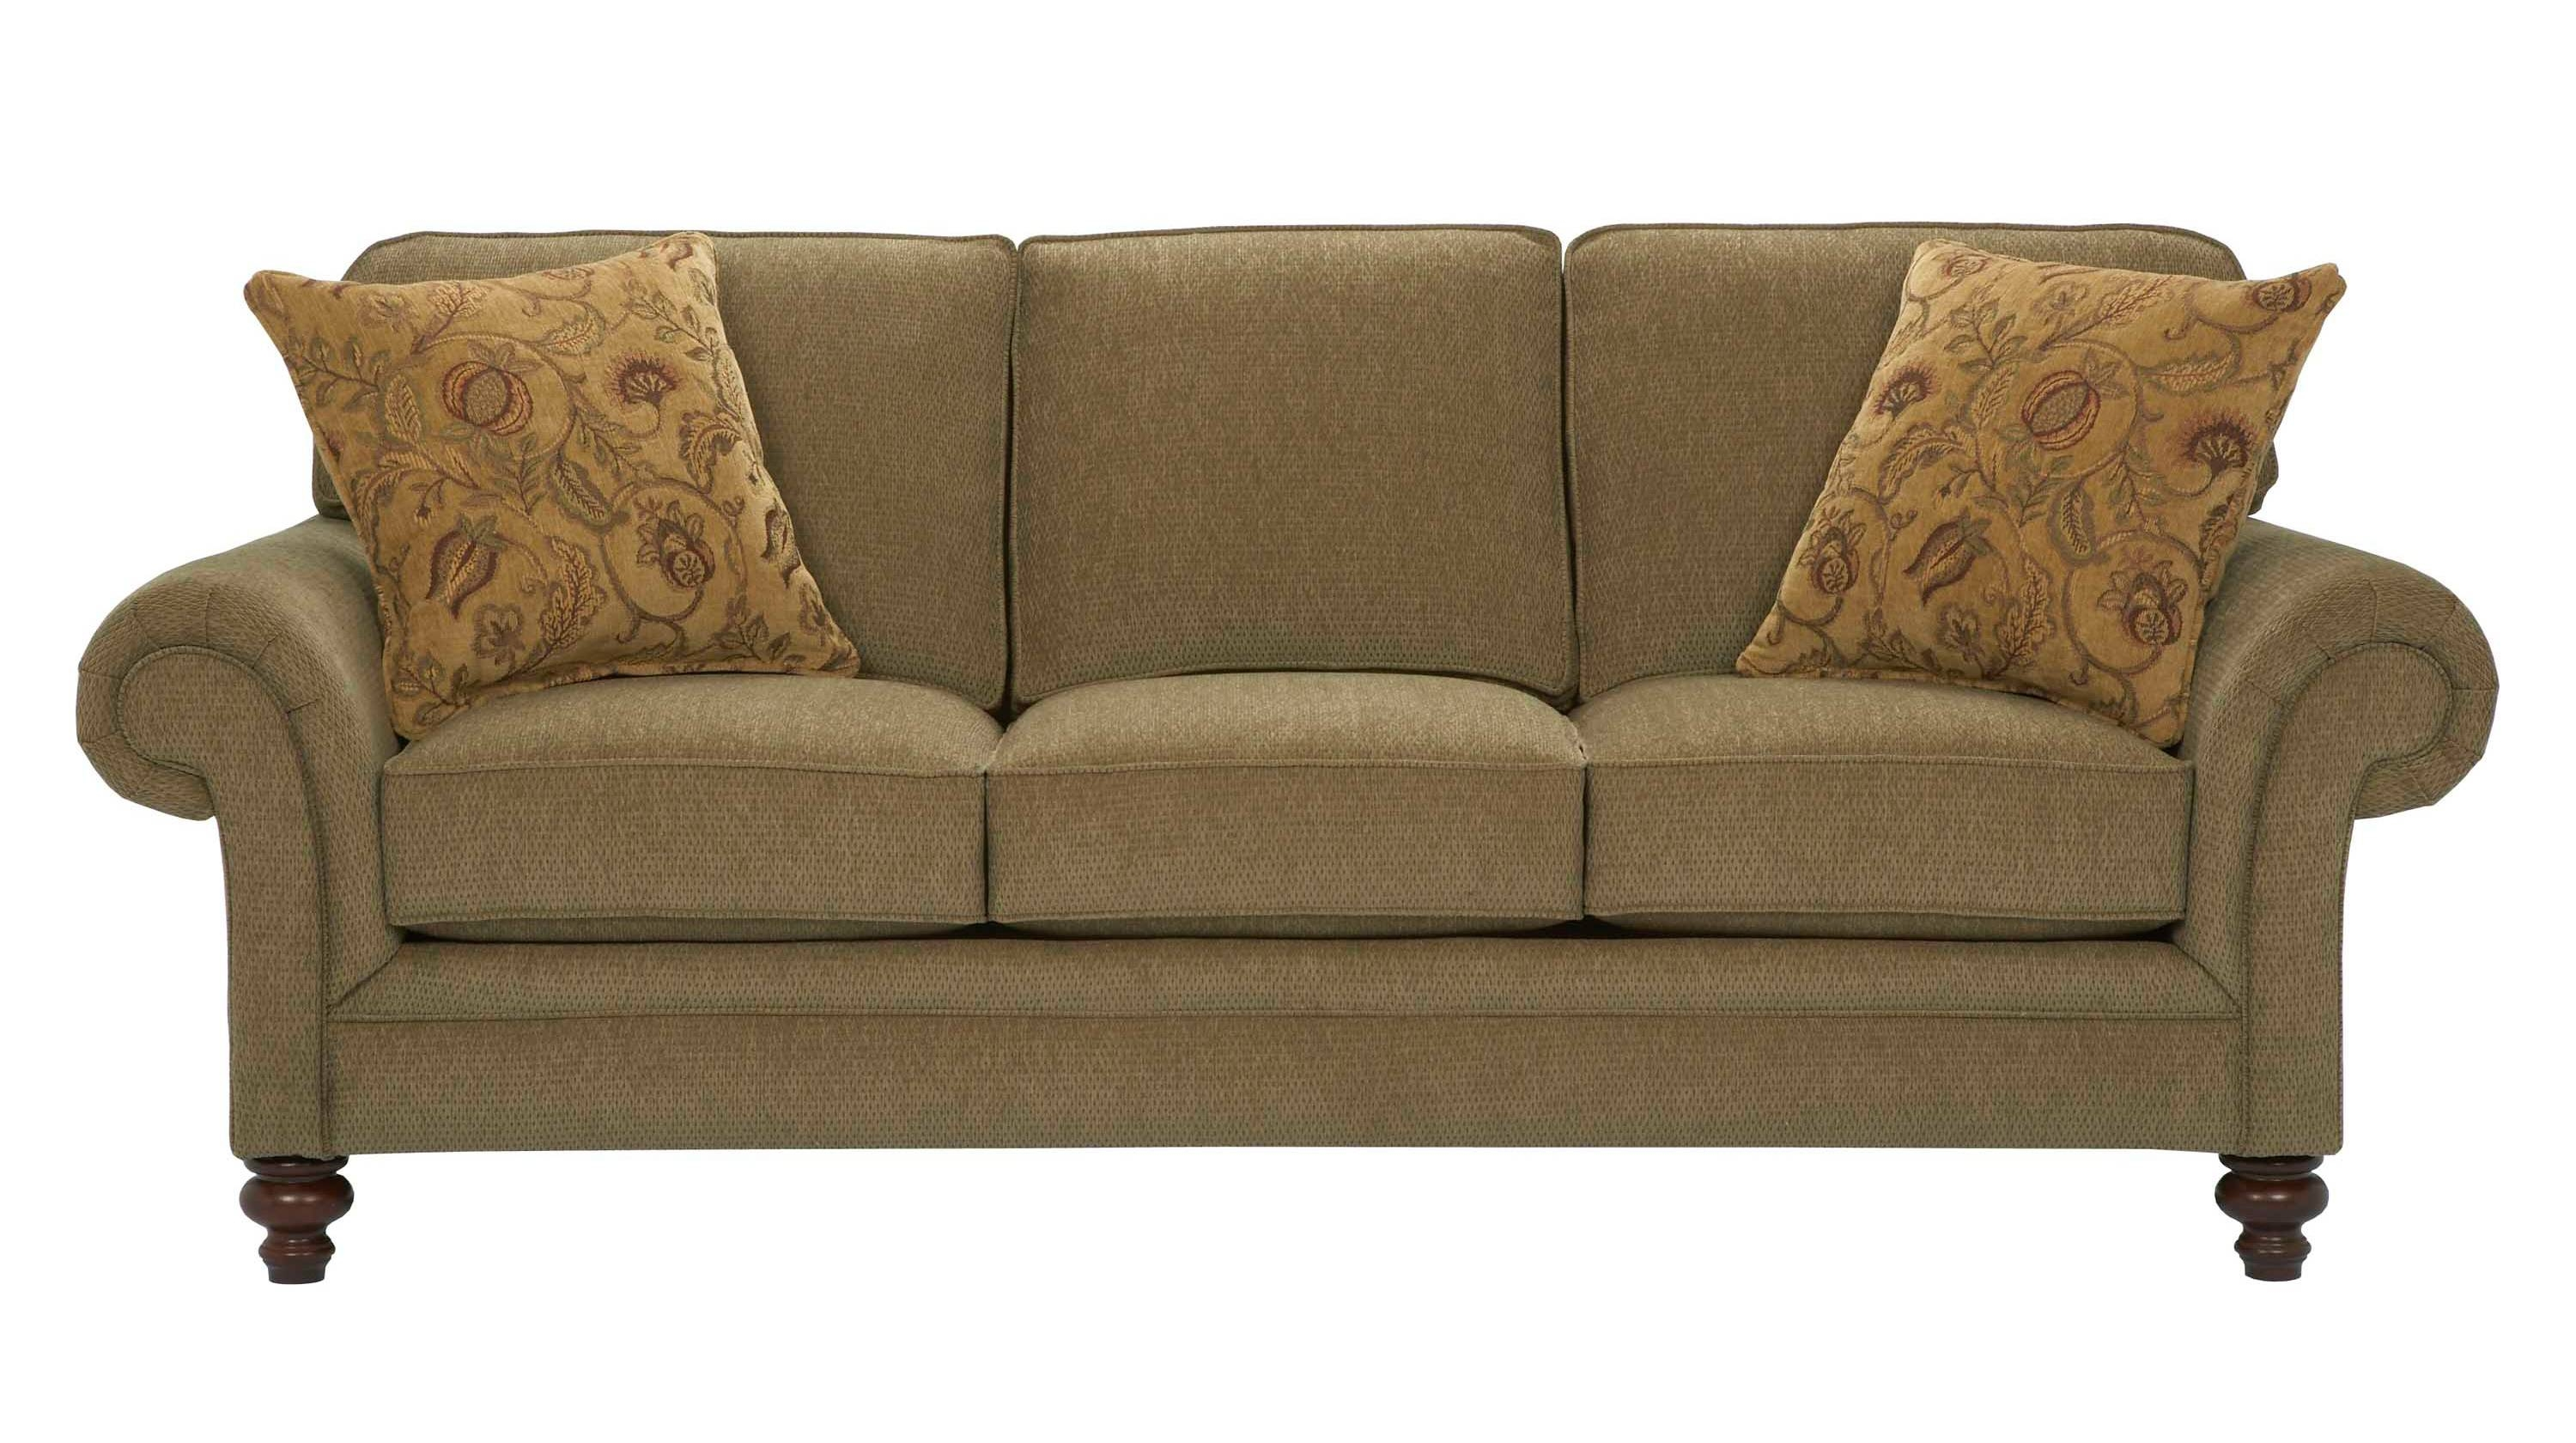 Broyhill Larissa Sofa 6112 3Q Intended For Broyhill Larissa Sofas (Photo 1 of 15)